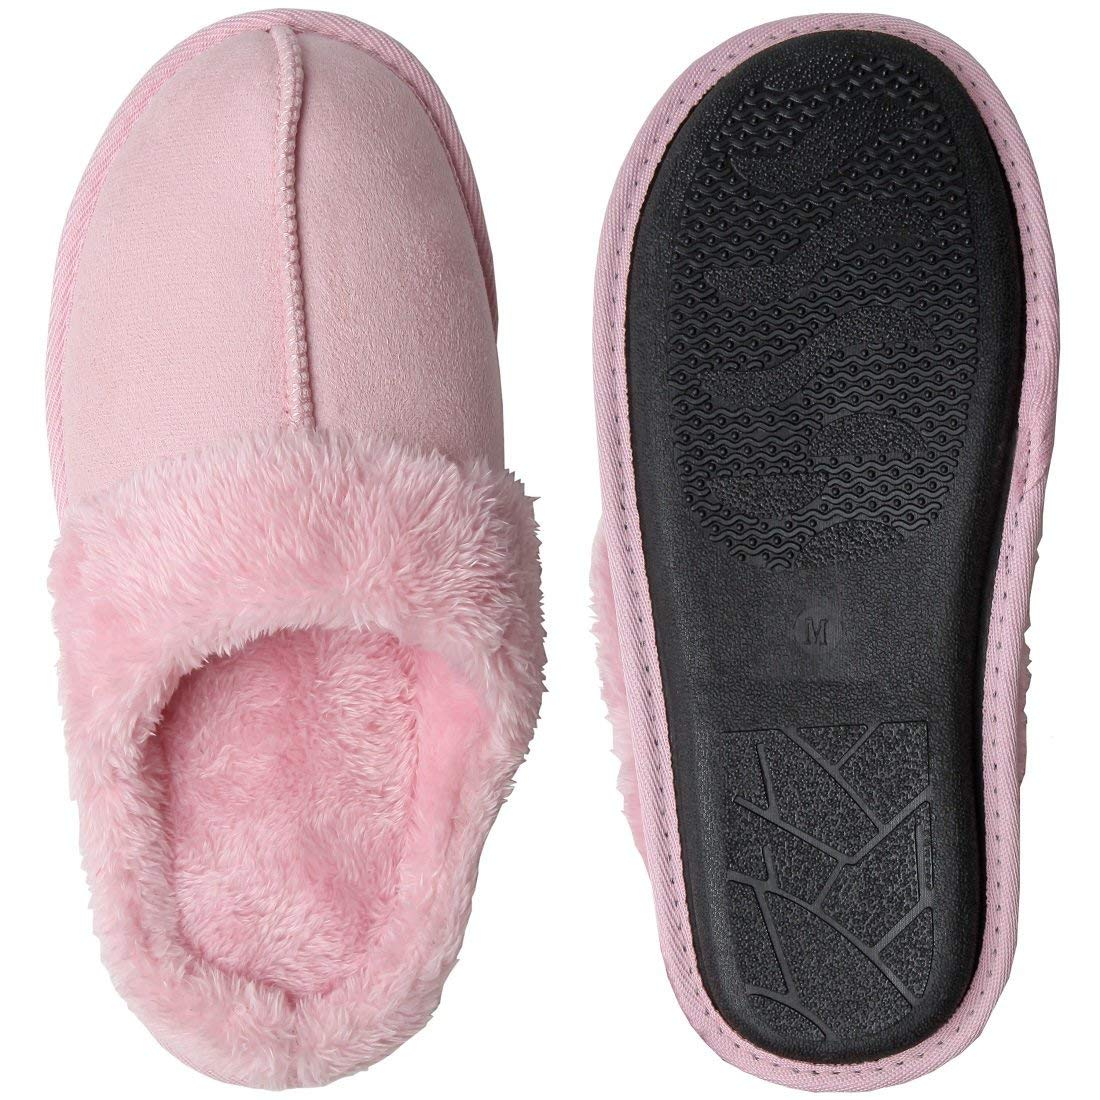 Home-X Women's Cozy Microfiber Clog Slippers, Incredibly Soft and Comfortable, Perfect for Daily Wear, Pink (Medium)